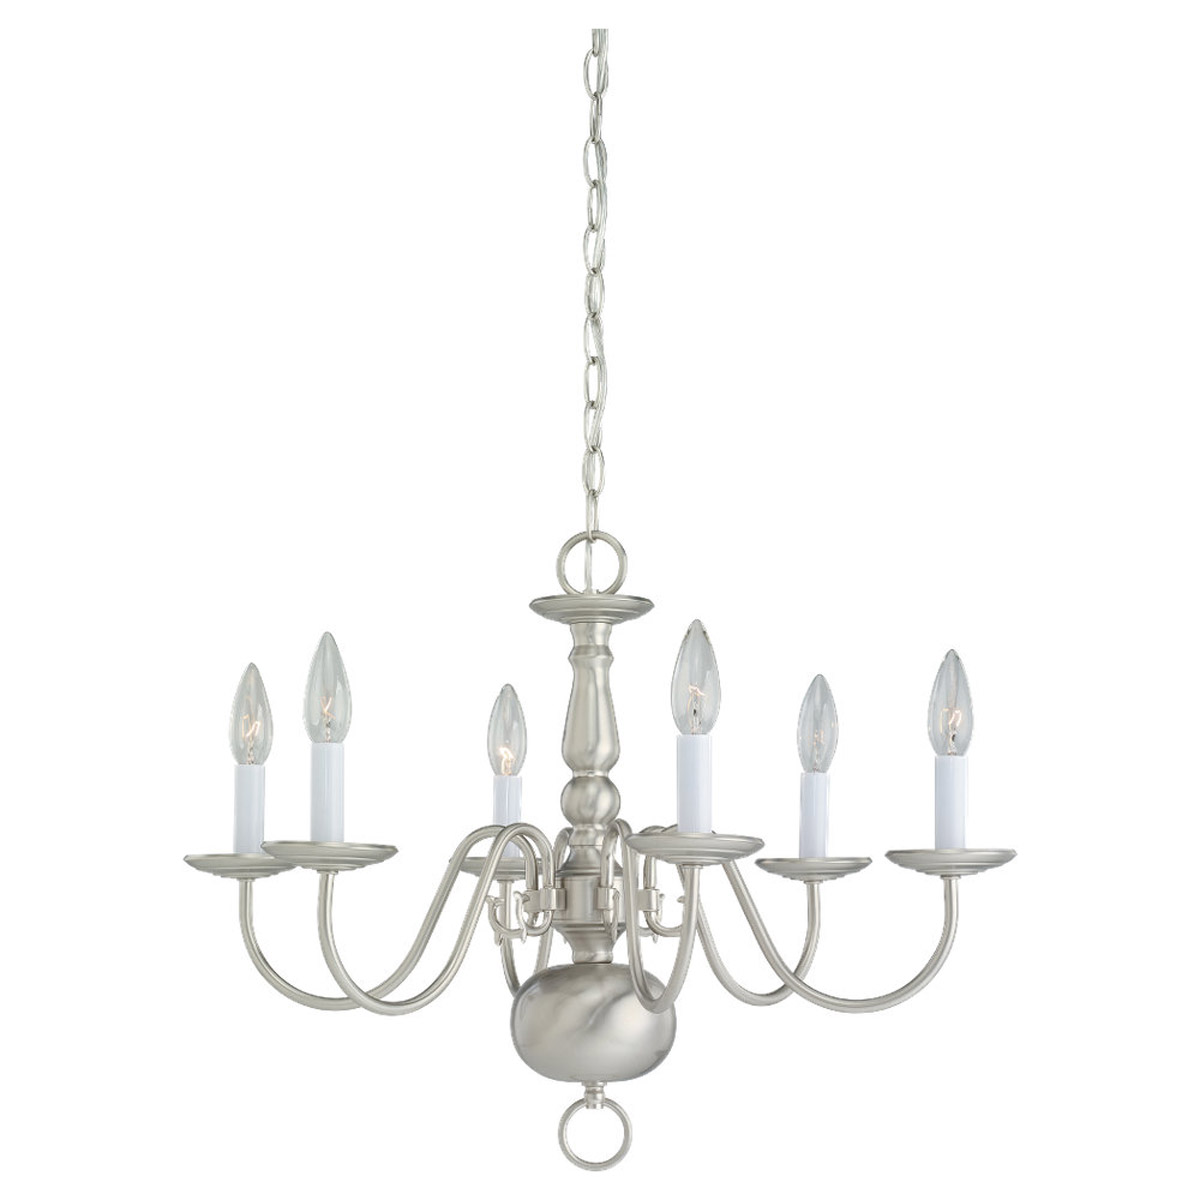 Sea Gull Lighting Traditional 6 Light Chandelier in Brushed Nickel 3411-962